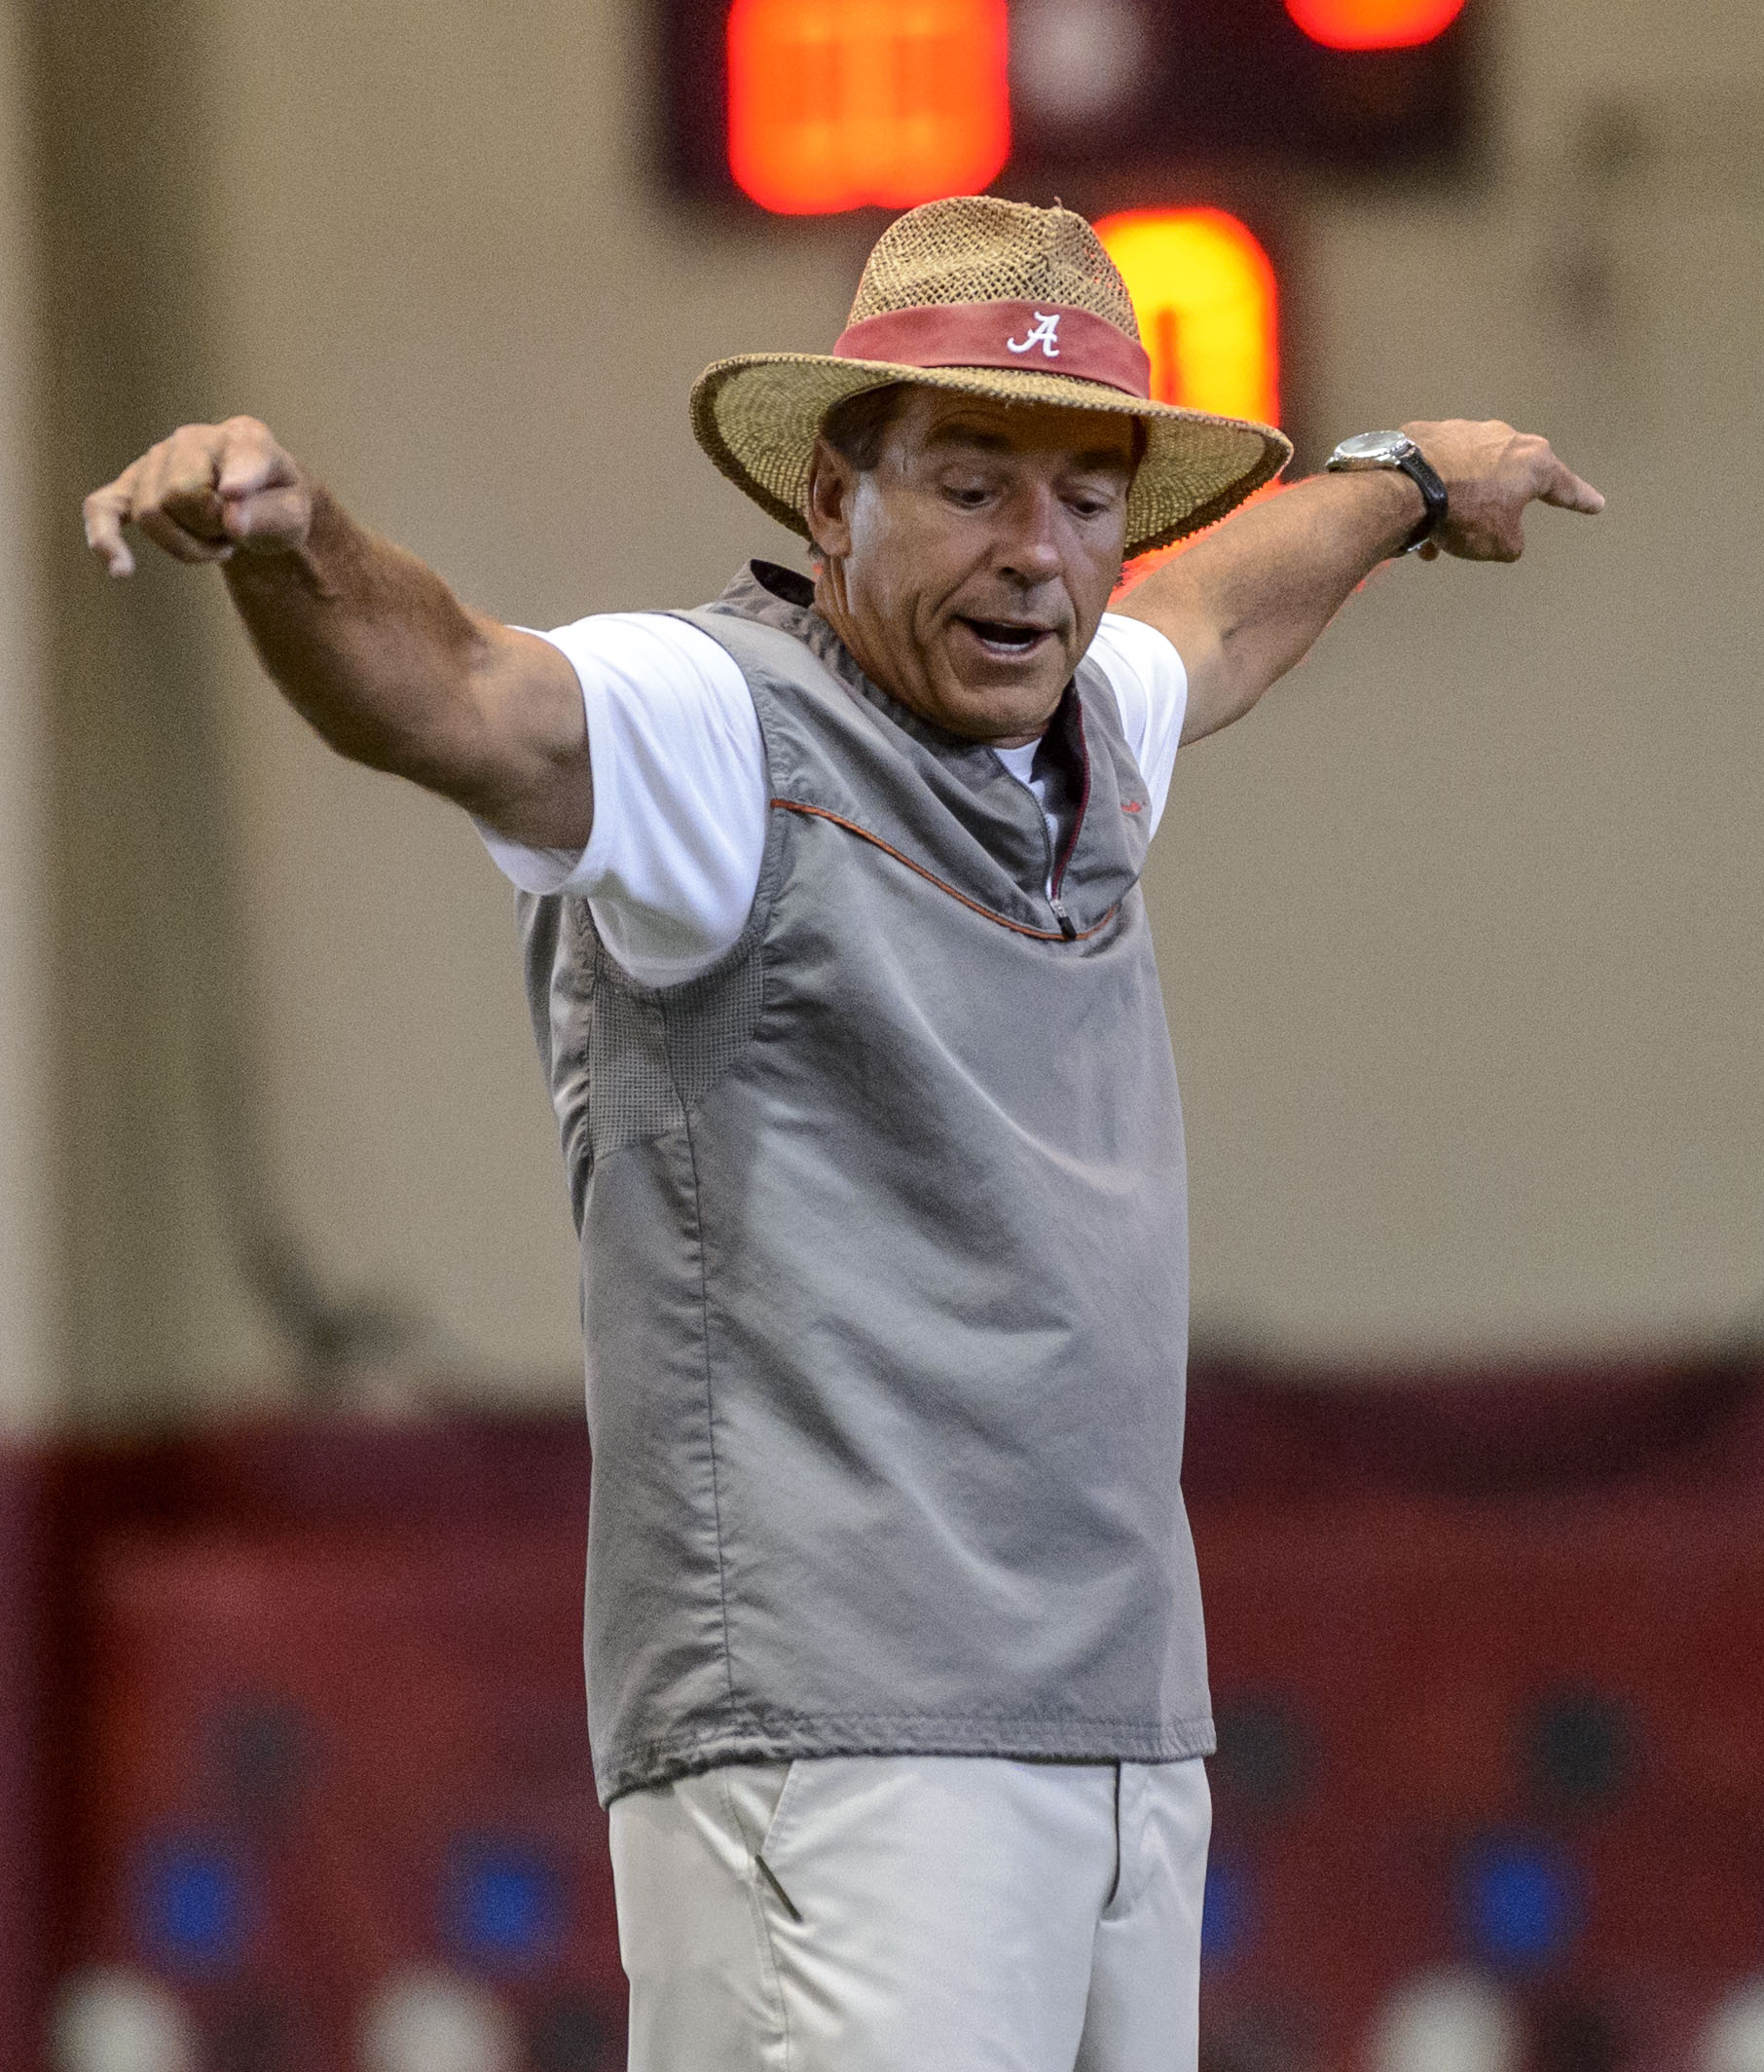 Alabama  coach Nick Saban directs defensive backs during drills at the NCAA college football team's practice, Thursday, Aug. 7, 2014, in Tuscaloosa, Ala